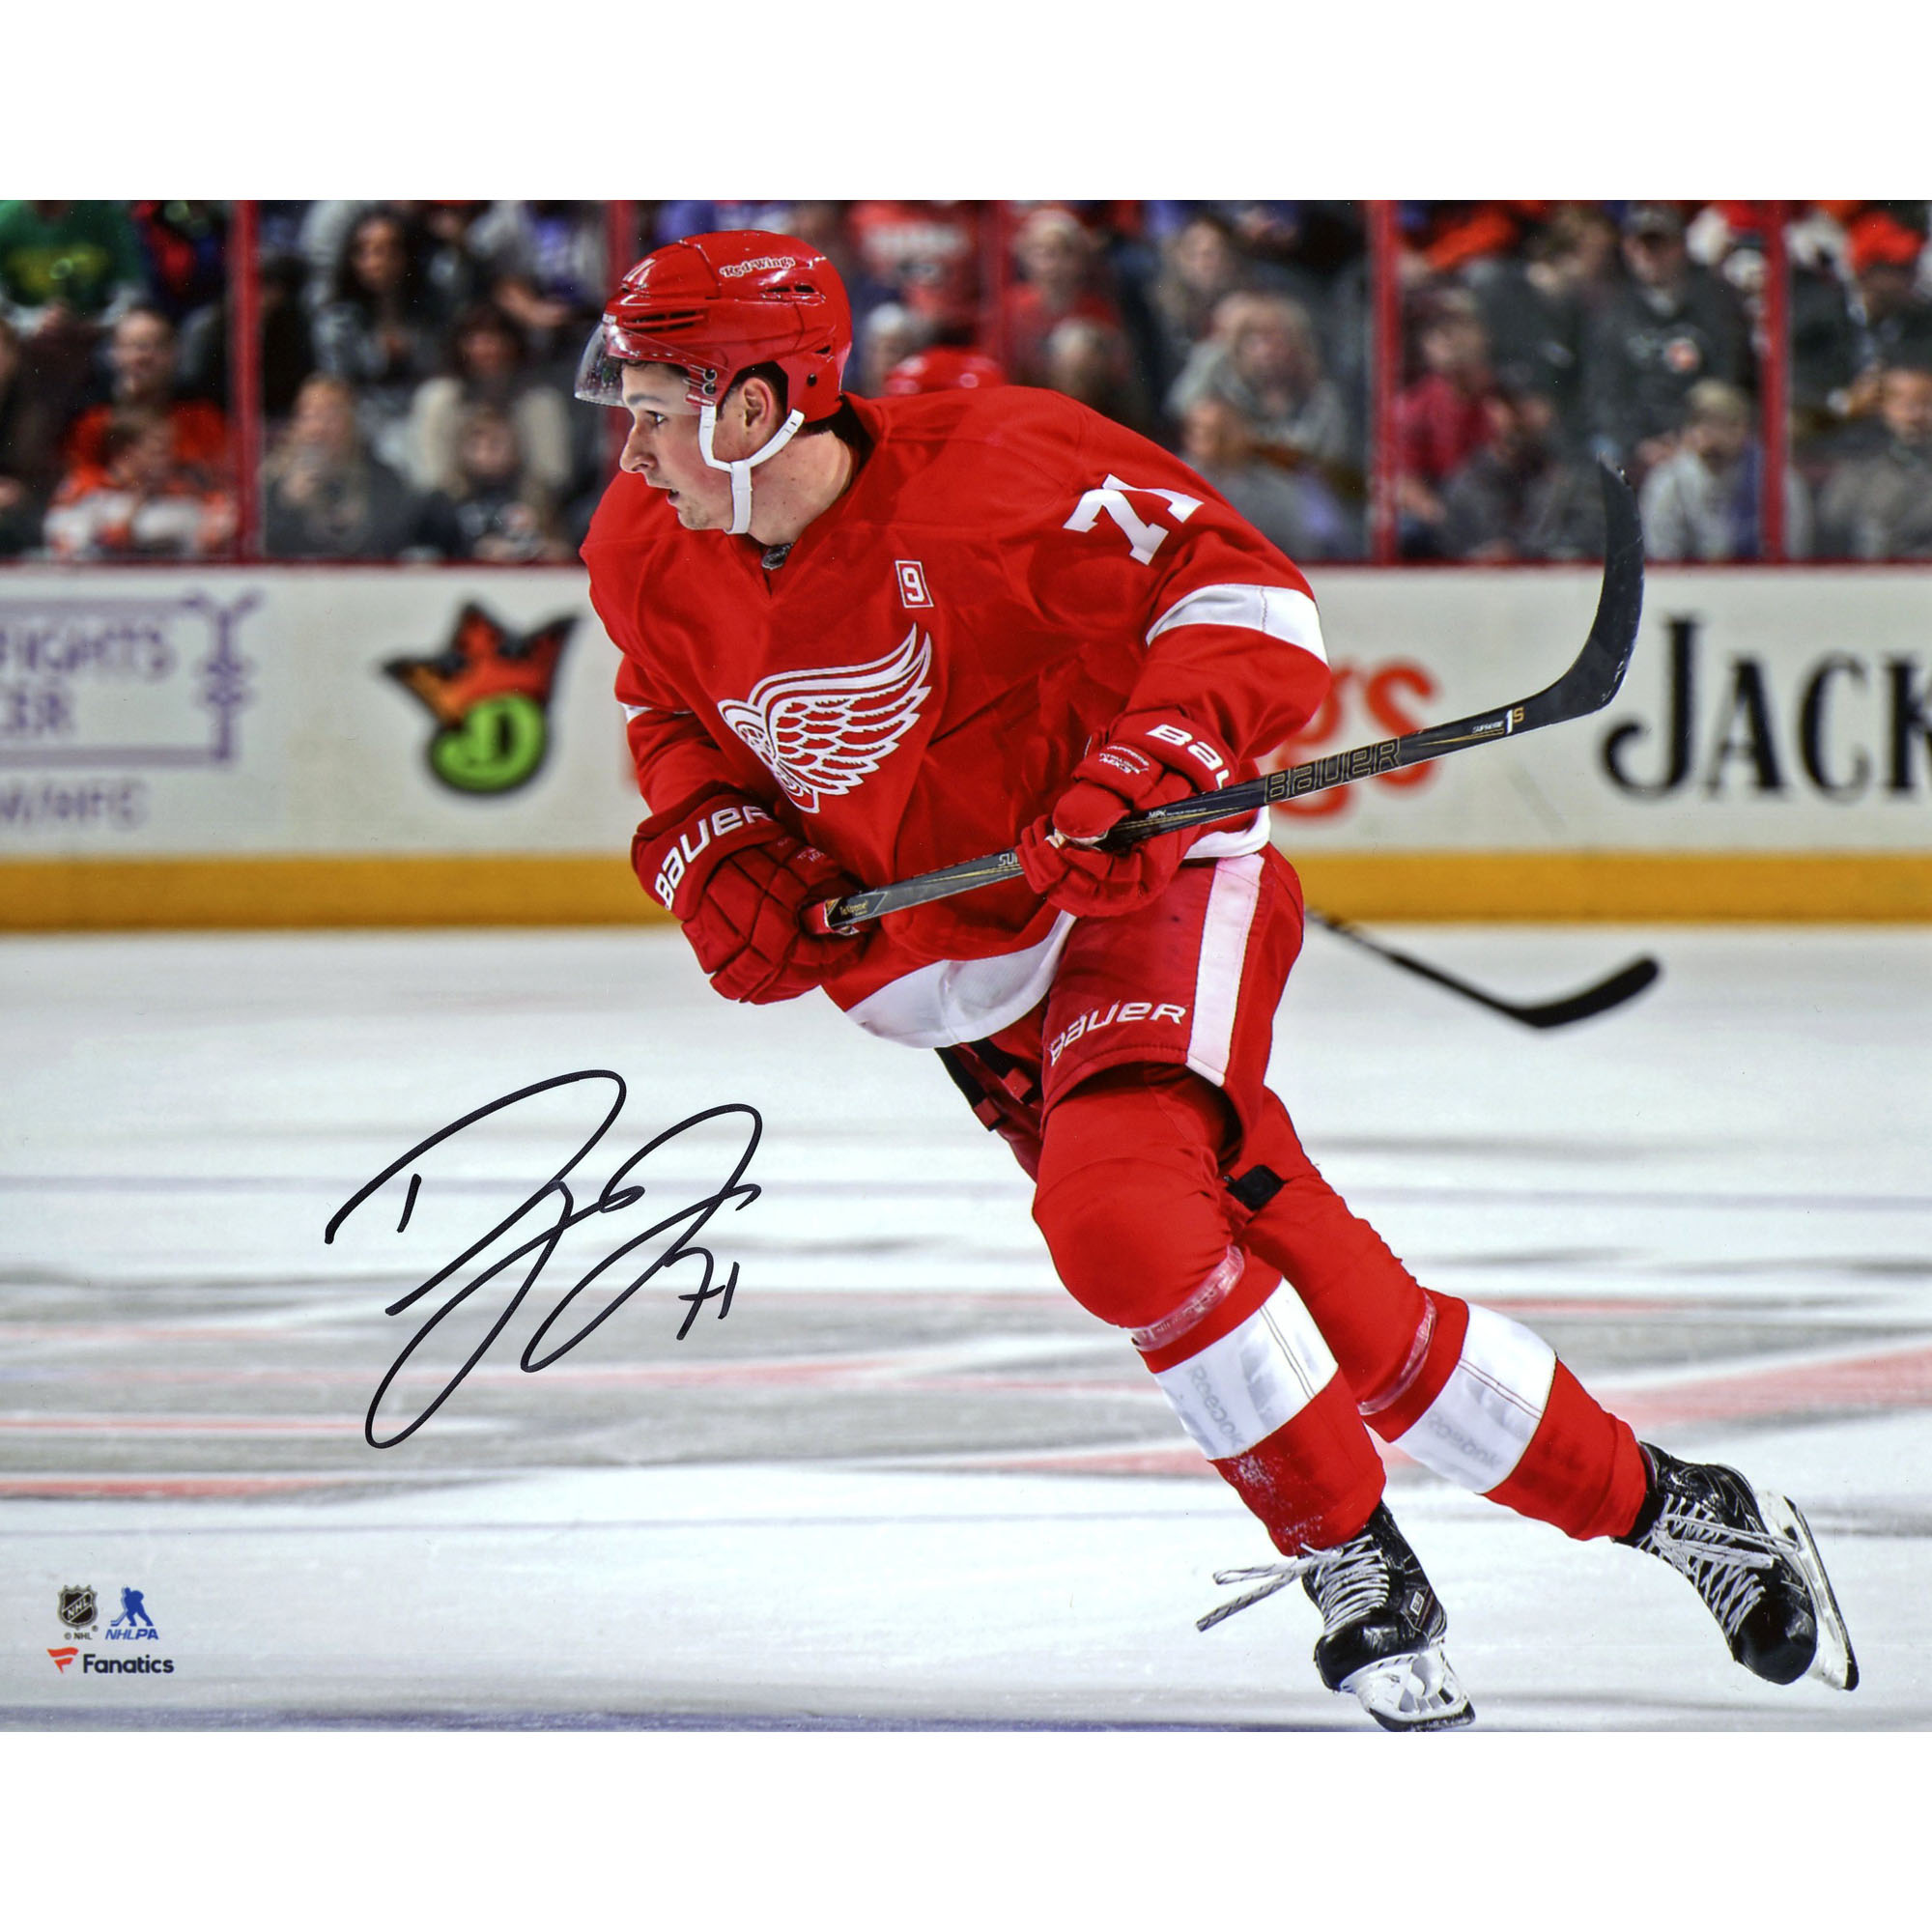 "Dylan Larkin Detroit Red Wings Fanatics Authentic Autographed 8"" x 10"" Red Jersey Skating Photograph - - No Size"